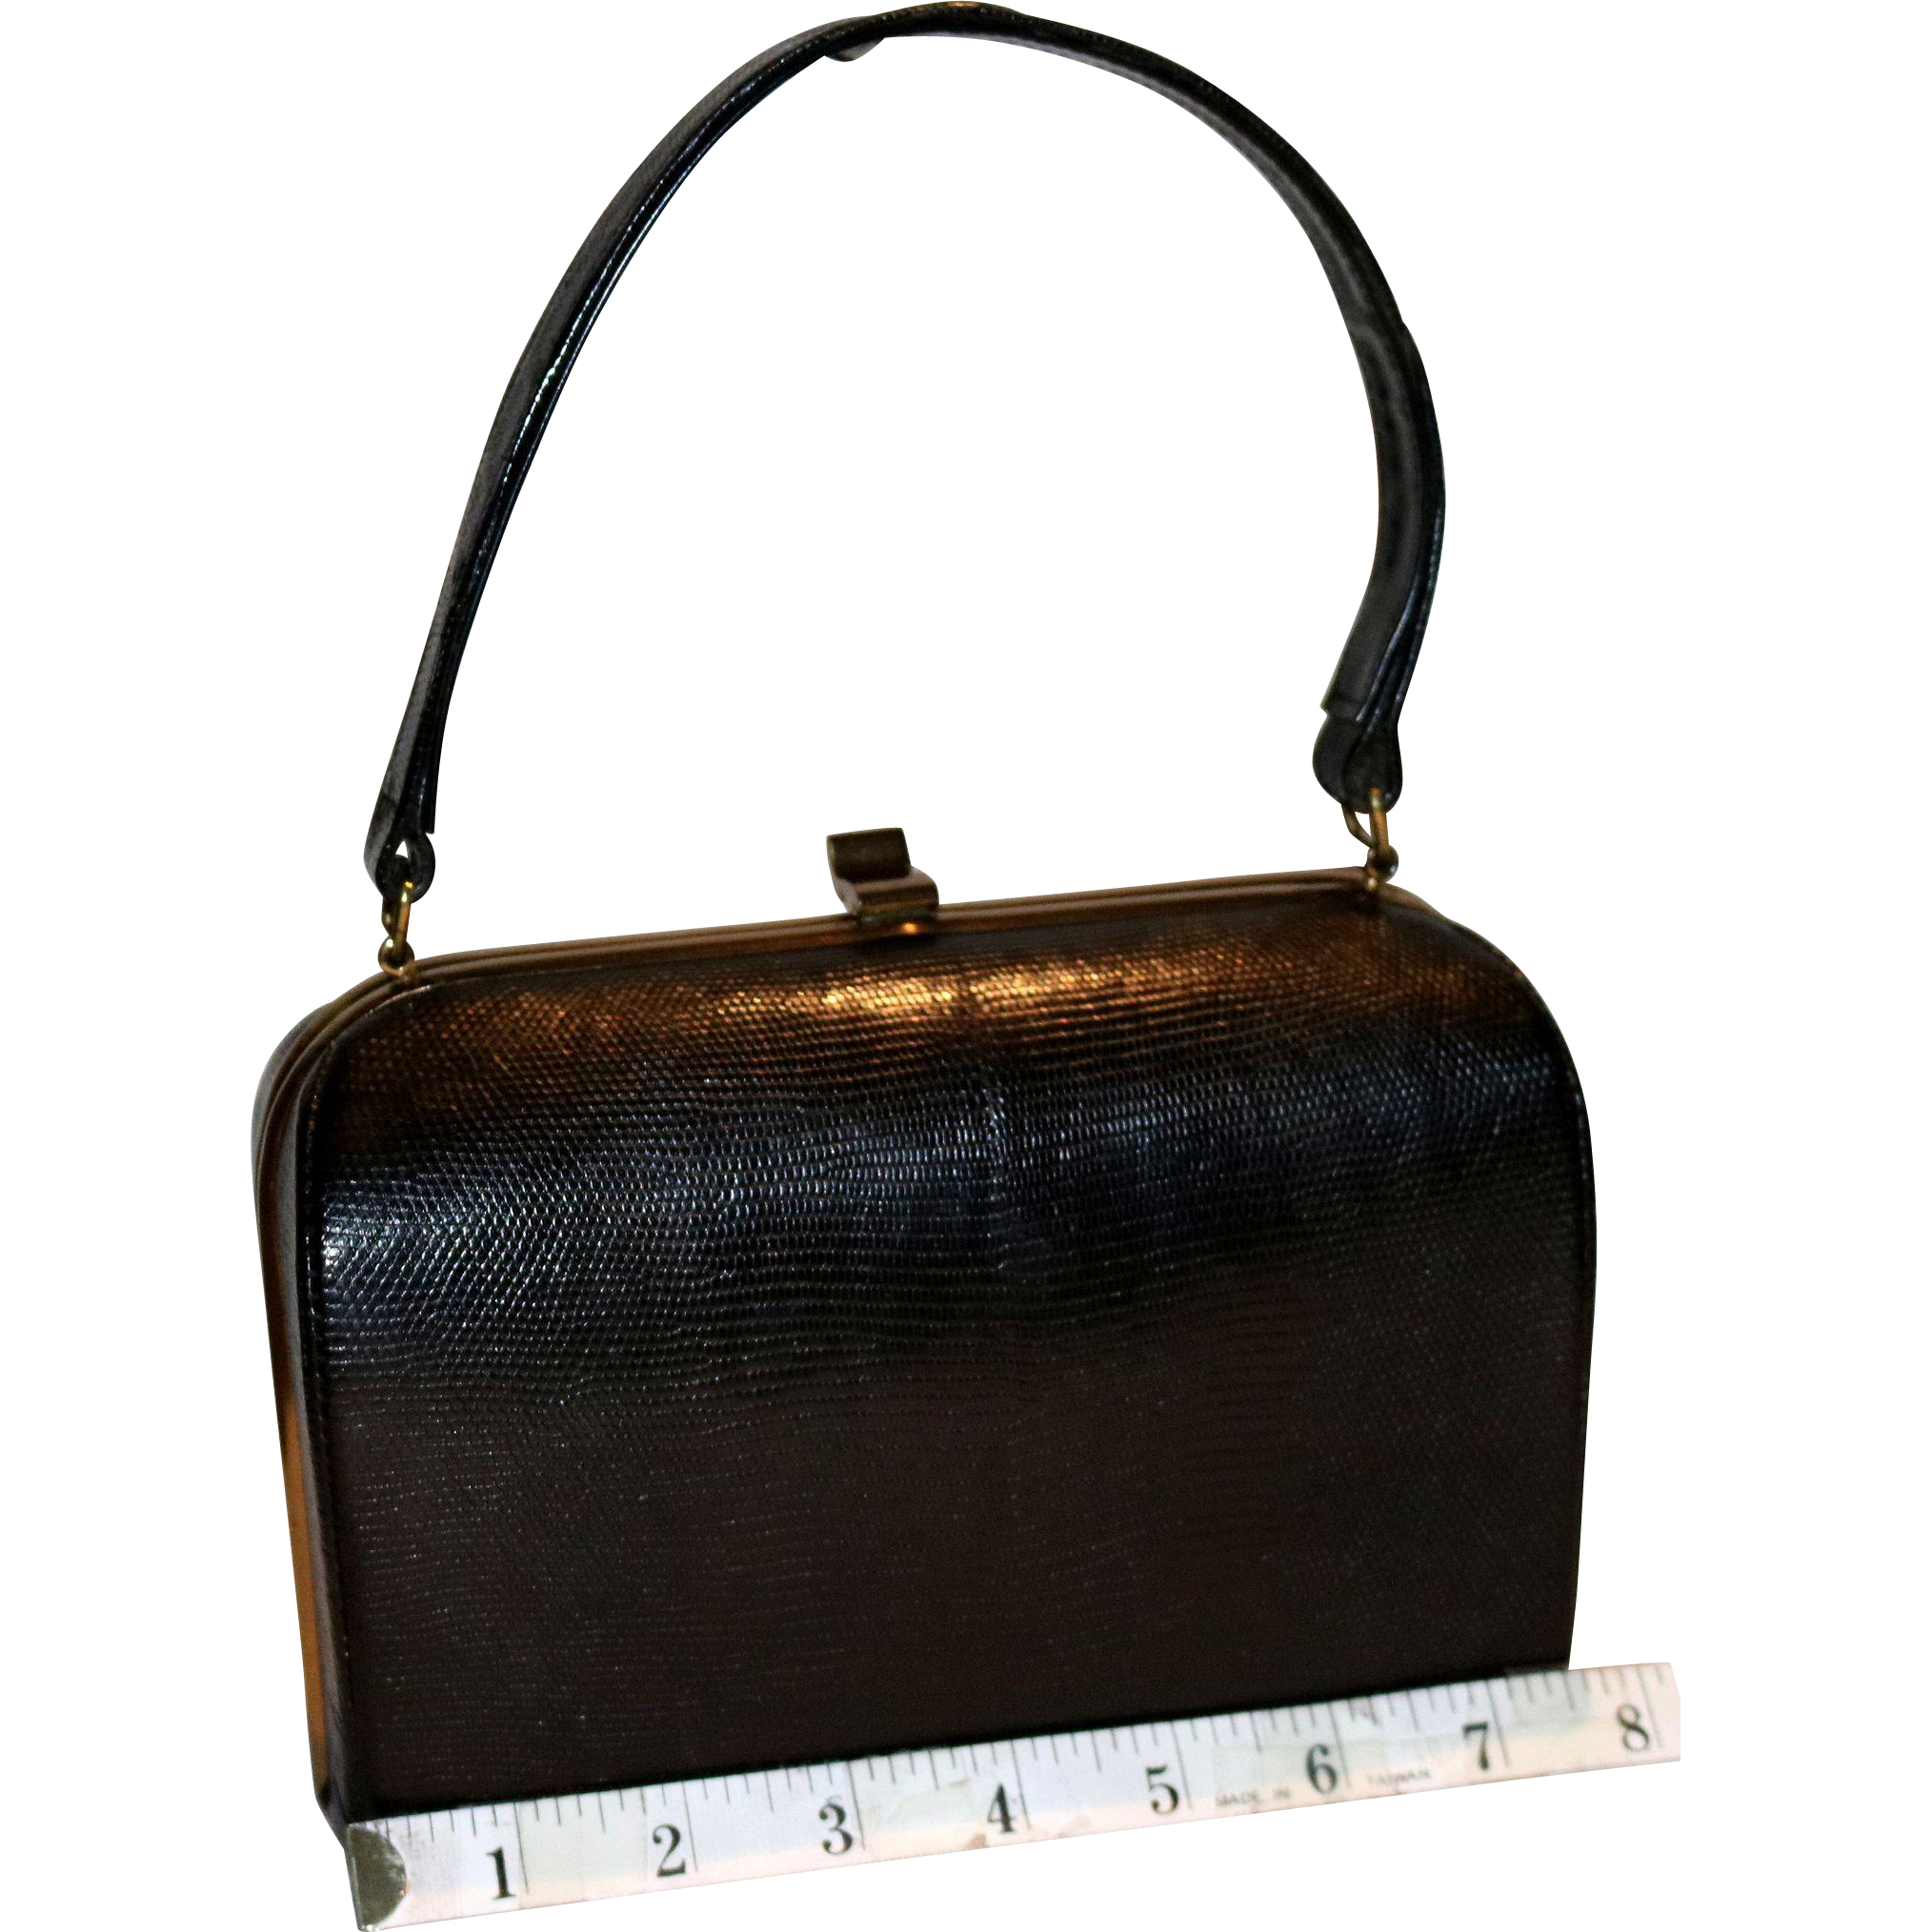 1950's Monitor Lizard Framed Box Satchel ExactMatch by Harry Revits.